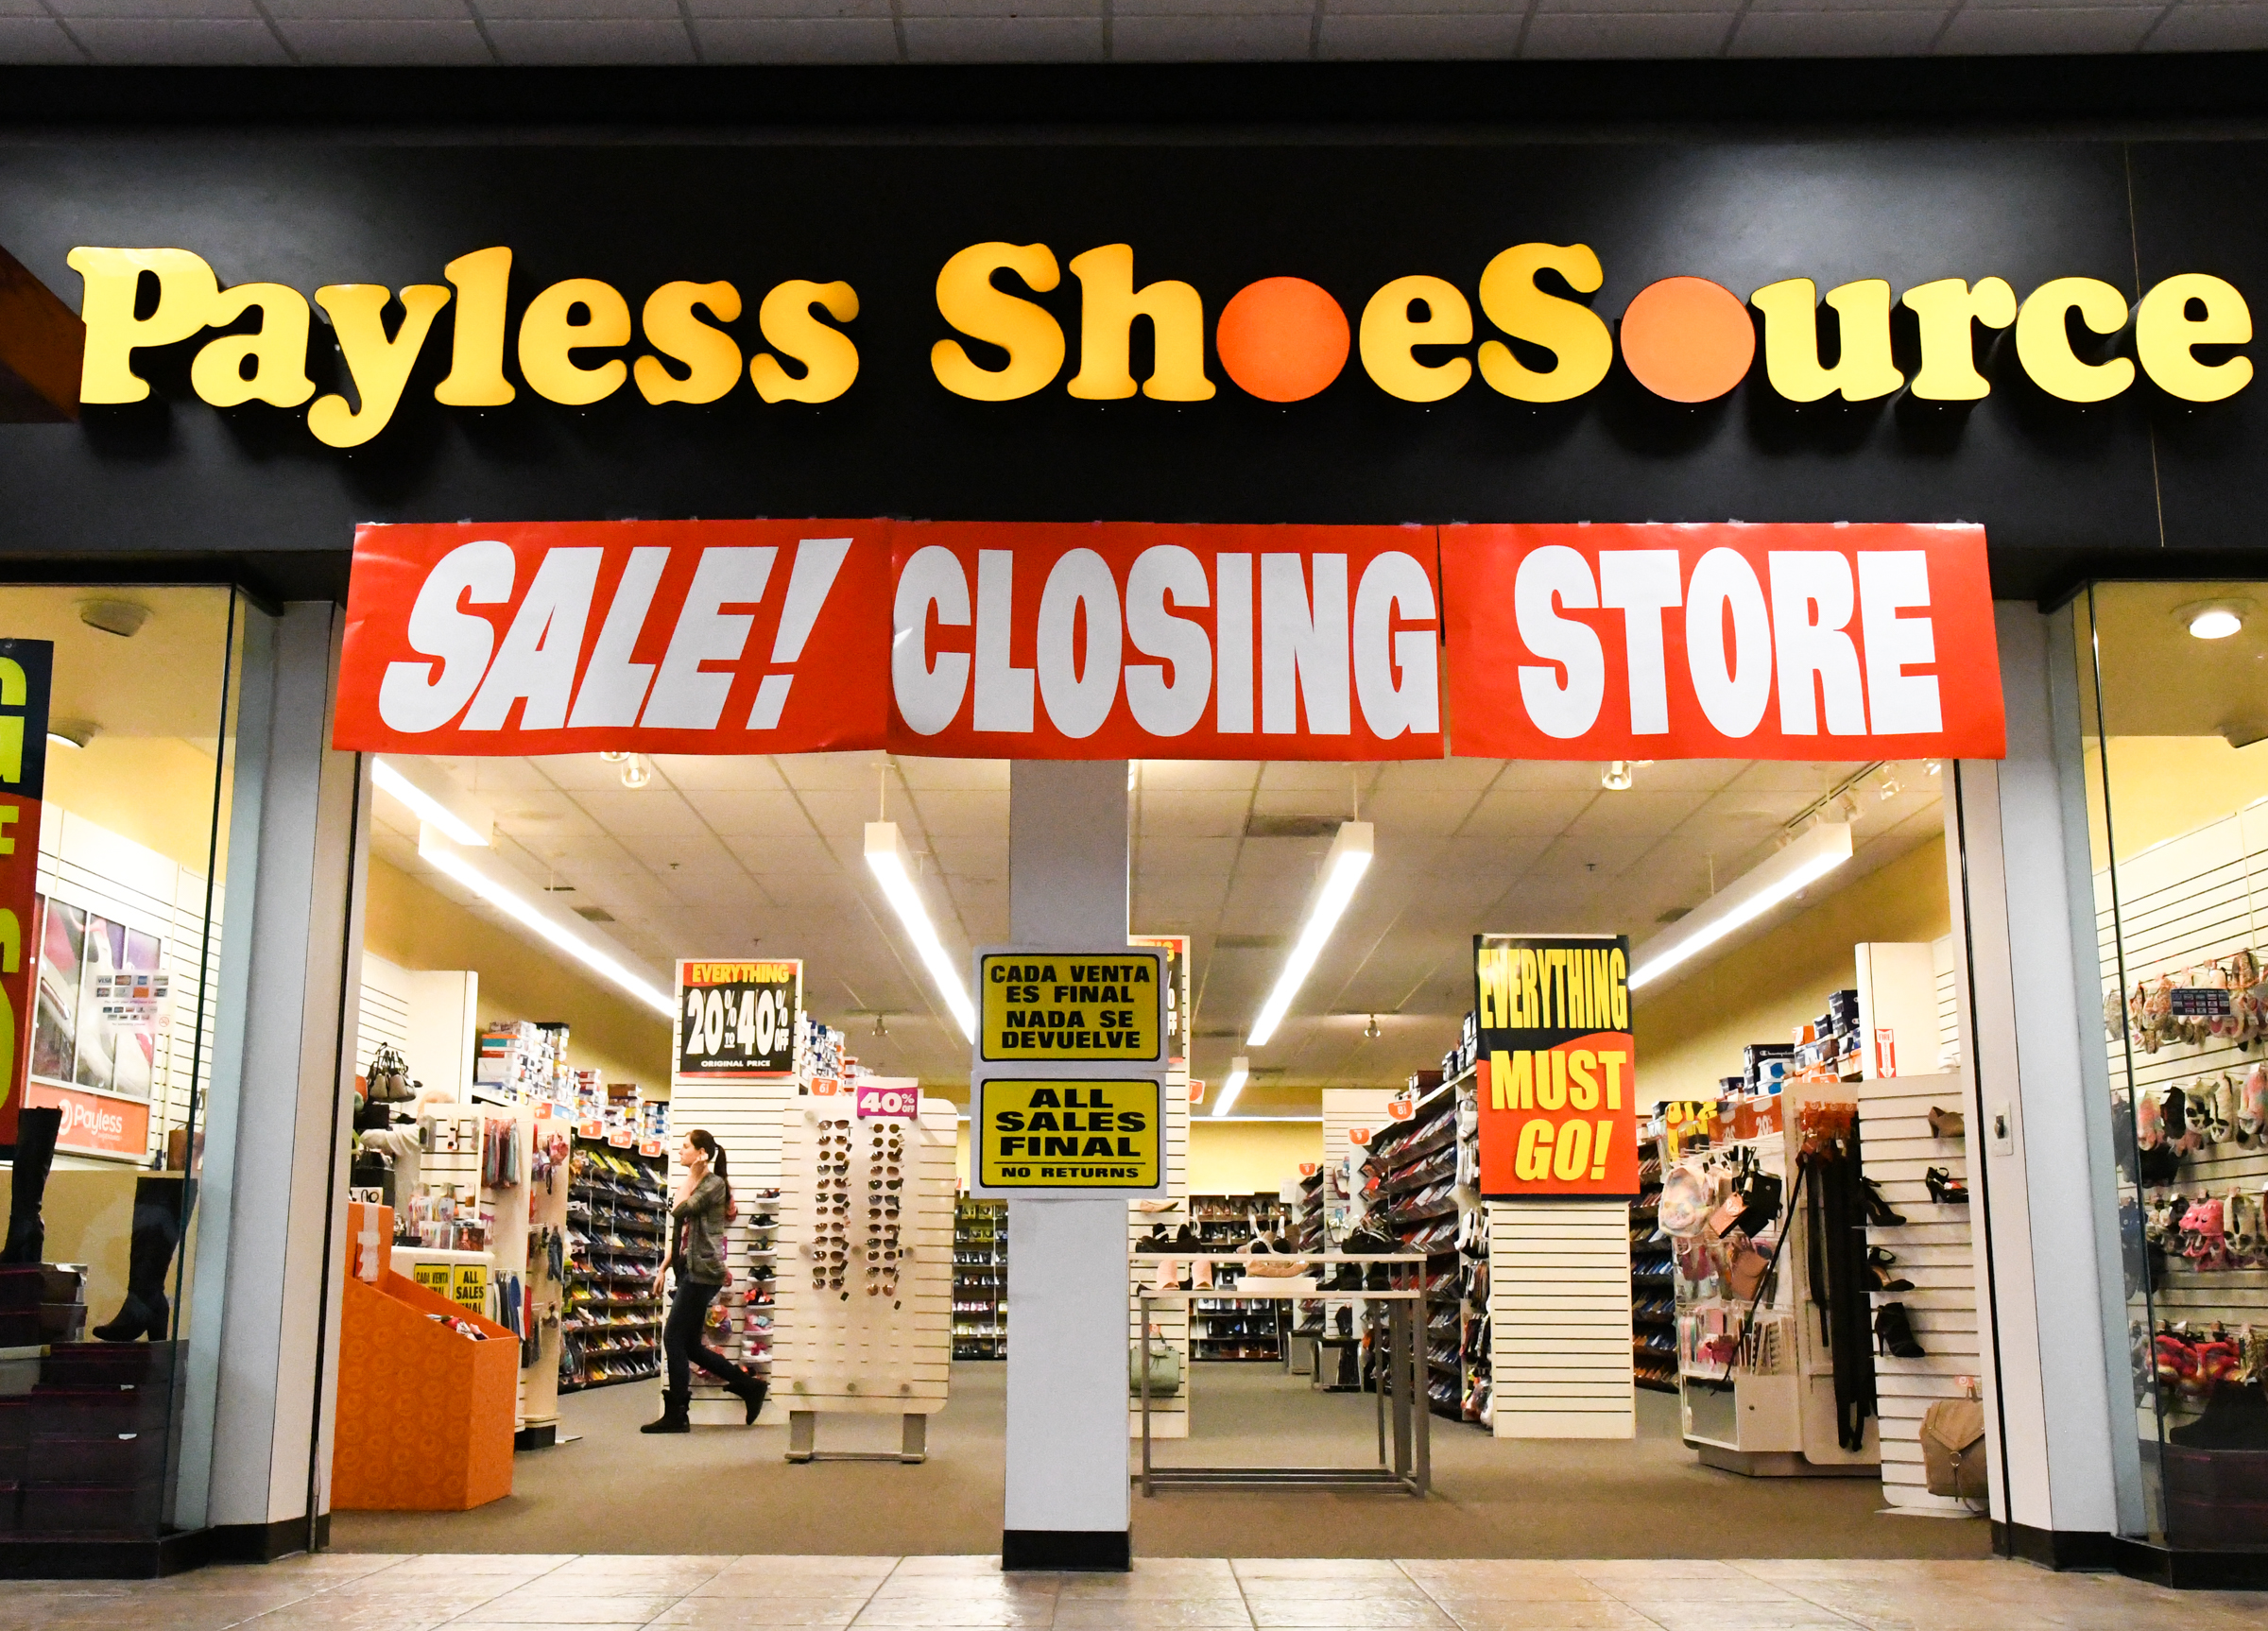 Glenwood Mall doubles down on assertion that Ross lease was problematic